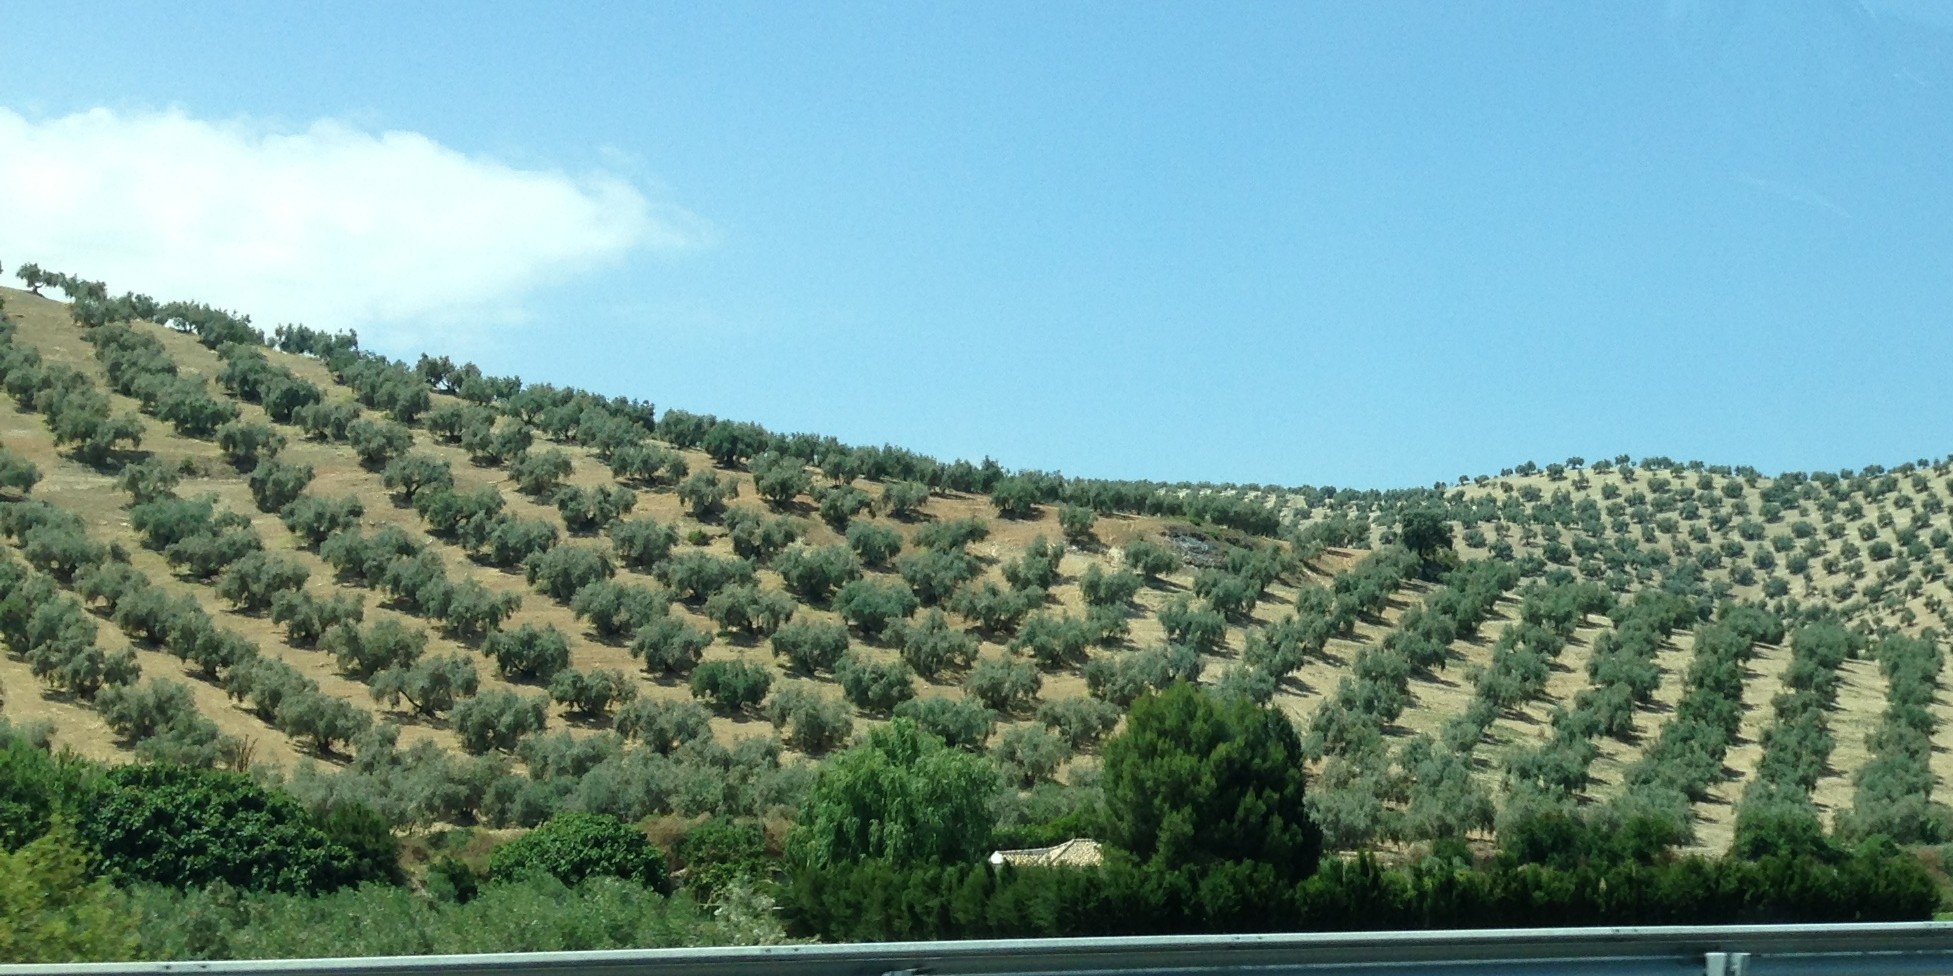 Andalucia's olive fields - looked liked gorgeous striped cloth from afar